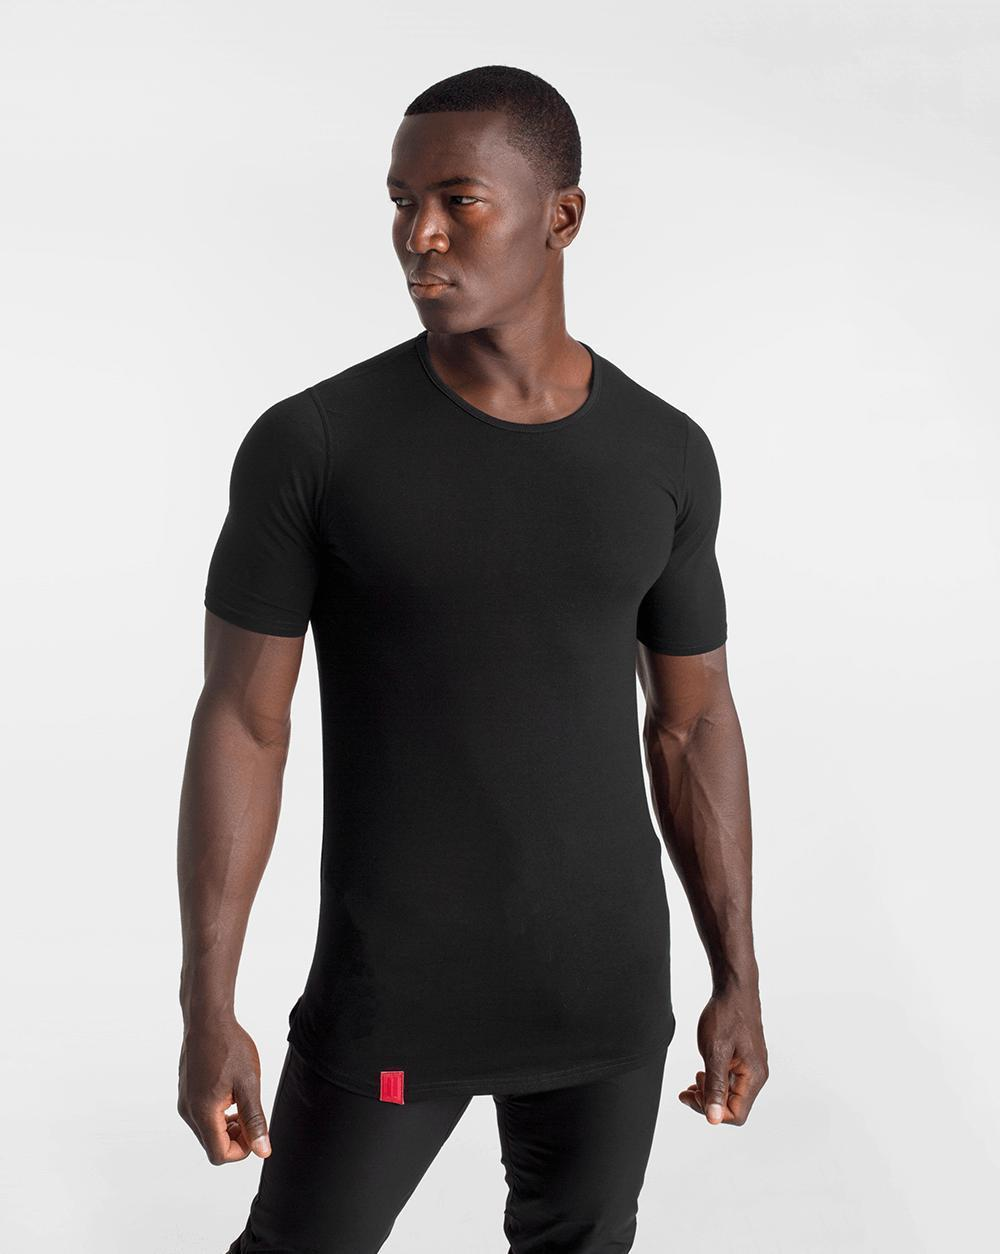 Biink Cardinal V2 Scoop Tee - Black